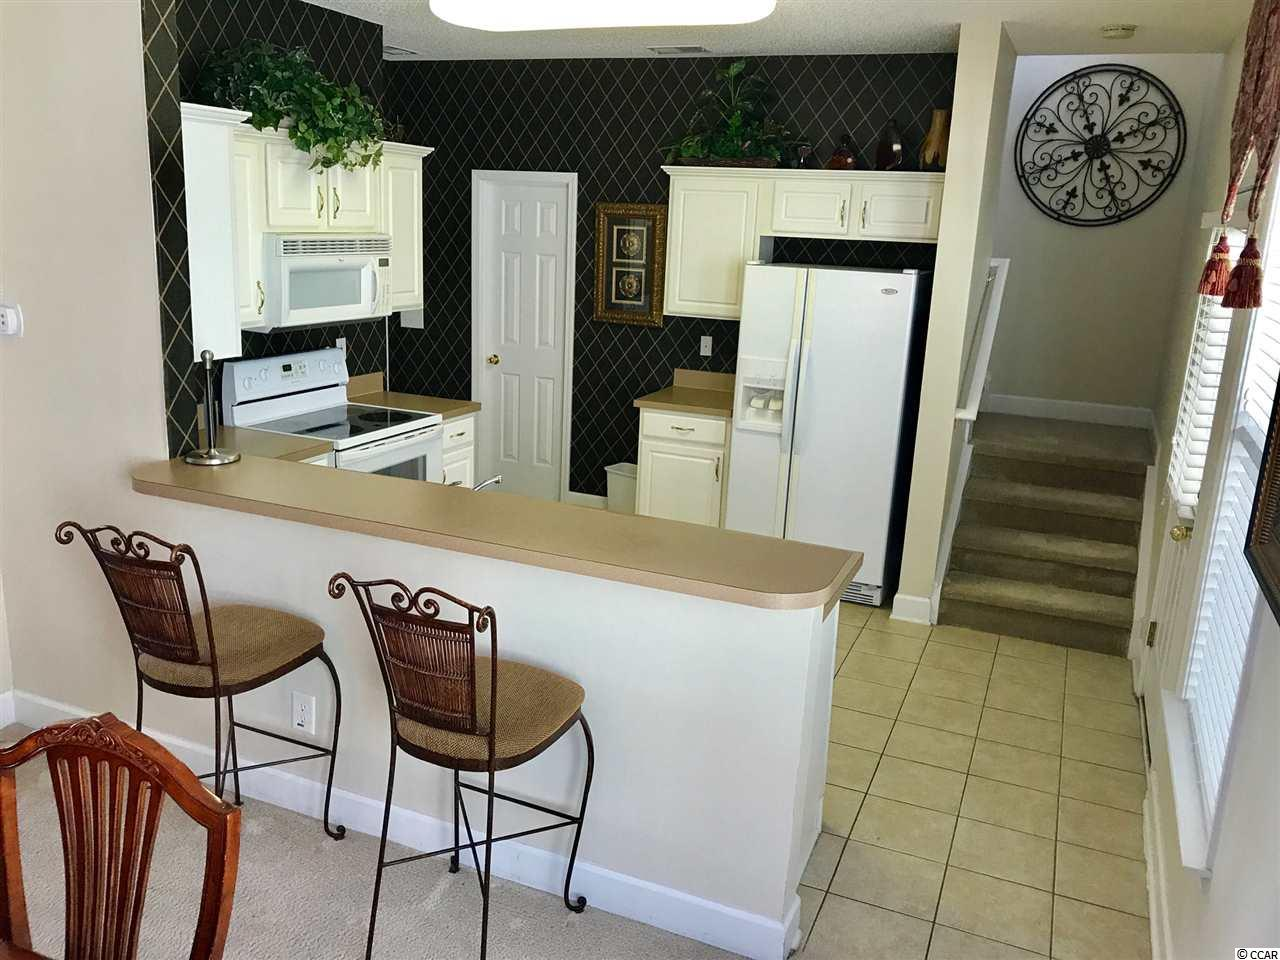 MLS #1708629 at  Tanglewood @ Barefoot Resort for sale